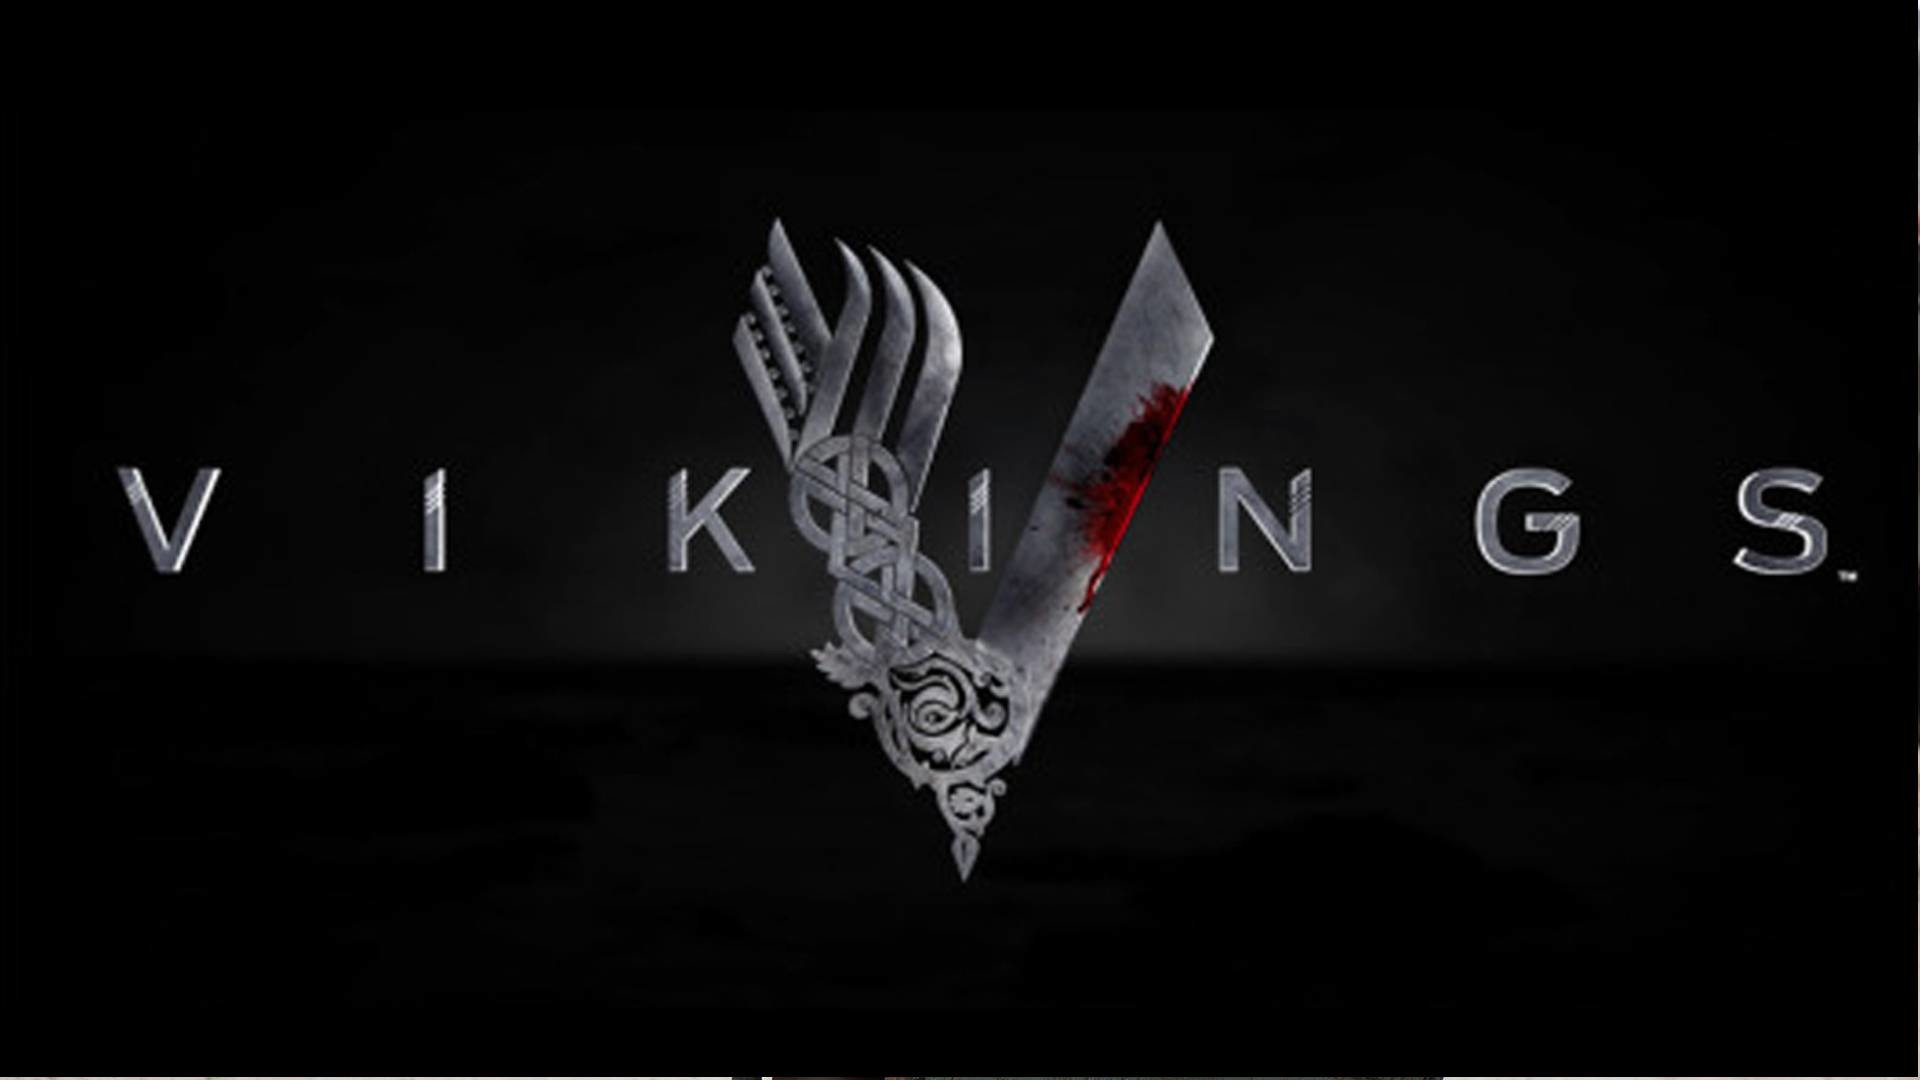 Vikings Wallpapers Pictures Images   HD Wallpapers   Pinterest   Vikings, Hd  wallpaper and Wallpaper